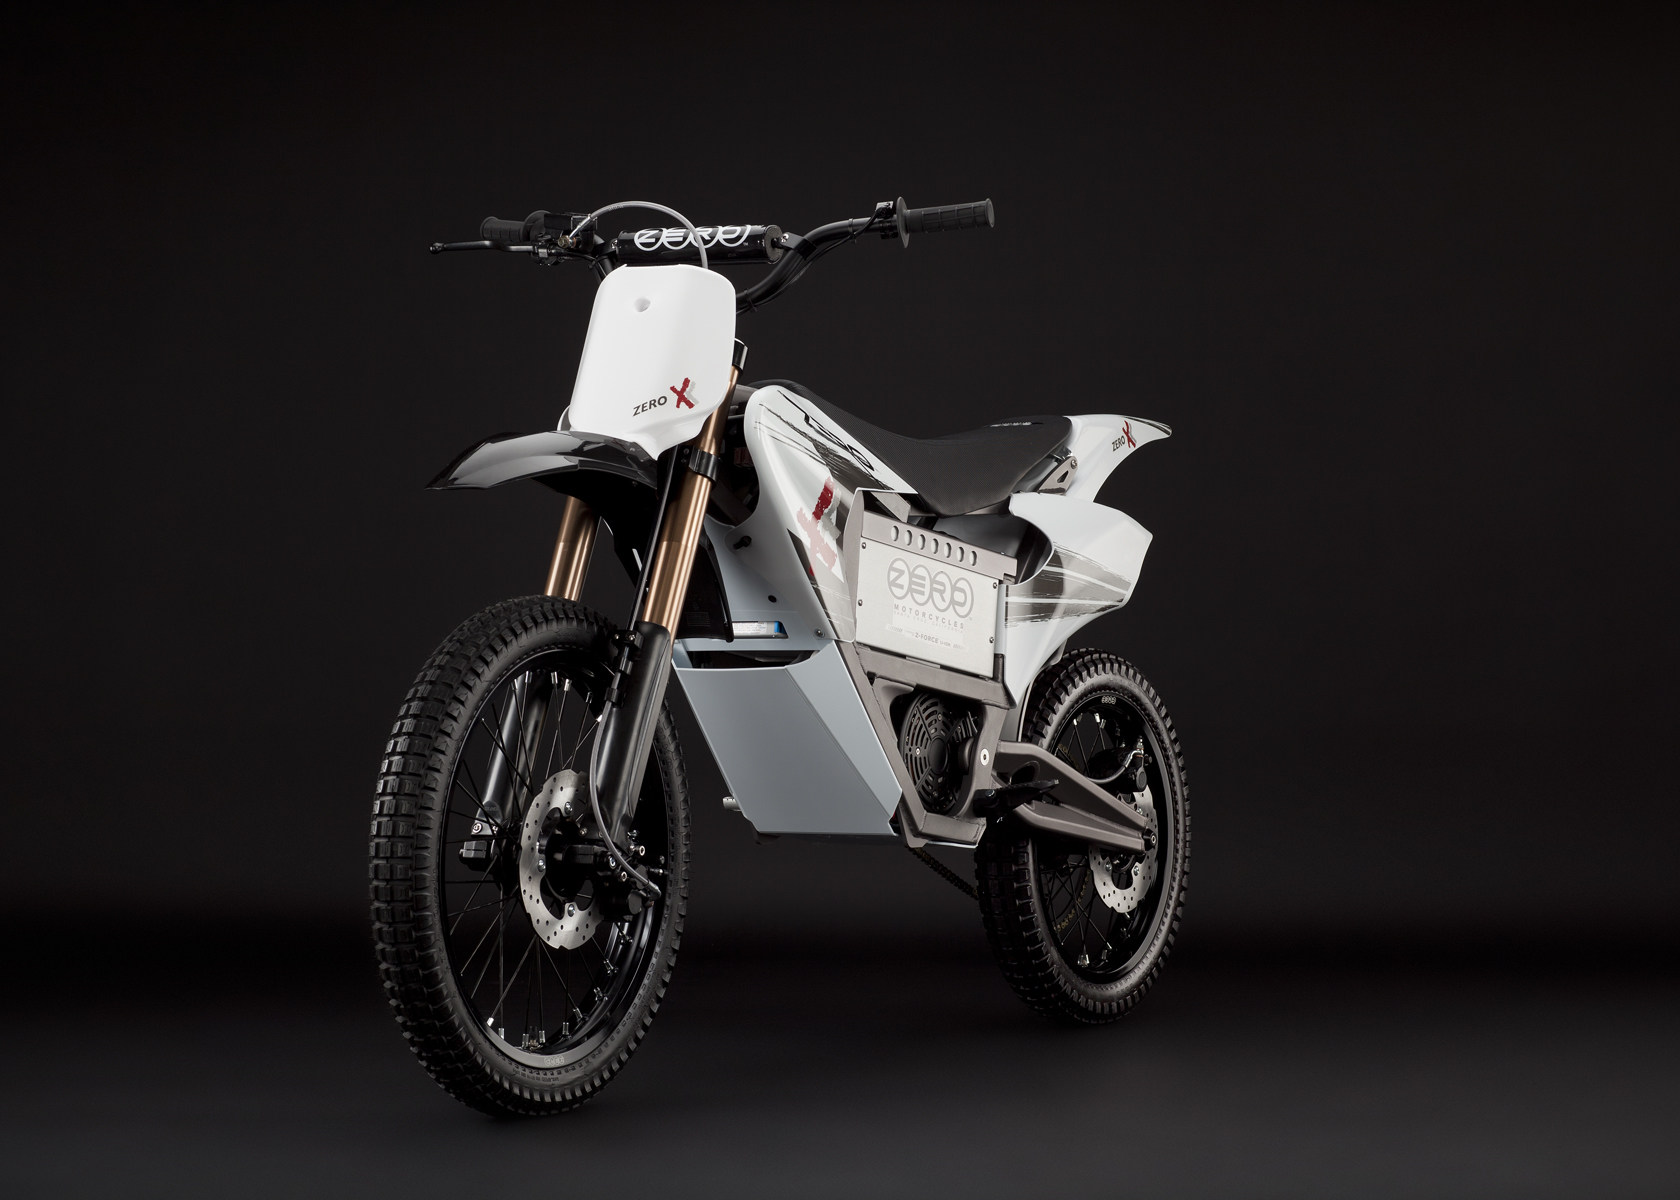 2011 Zero X Electric Motorcycle: Angle Left, Dirt Model